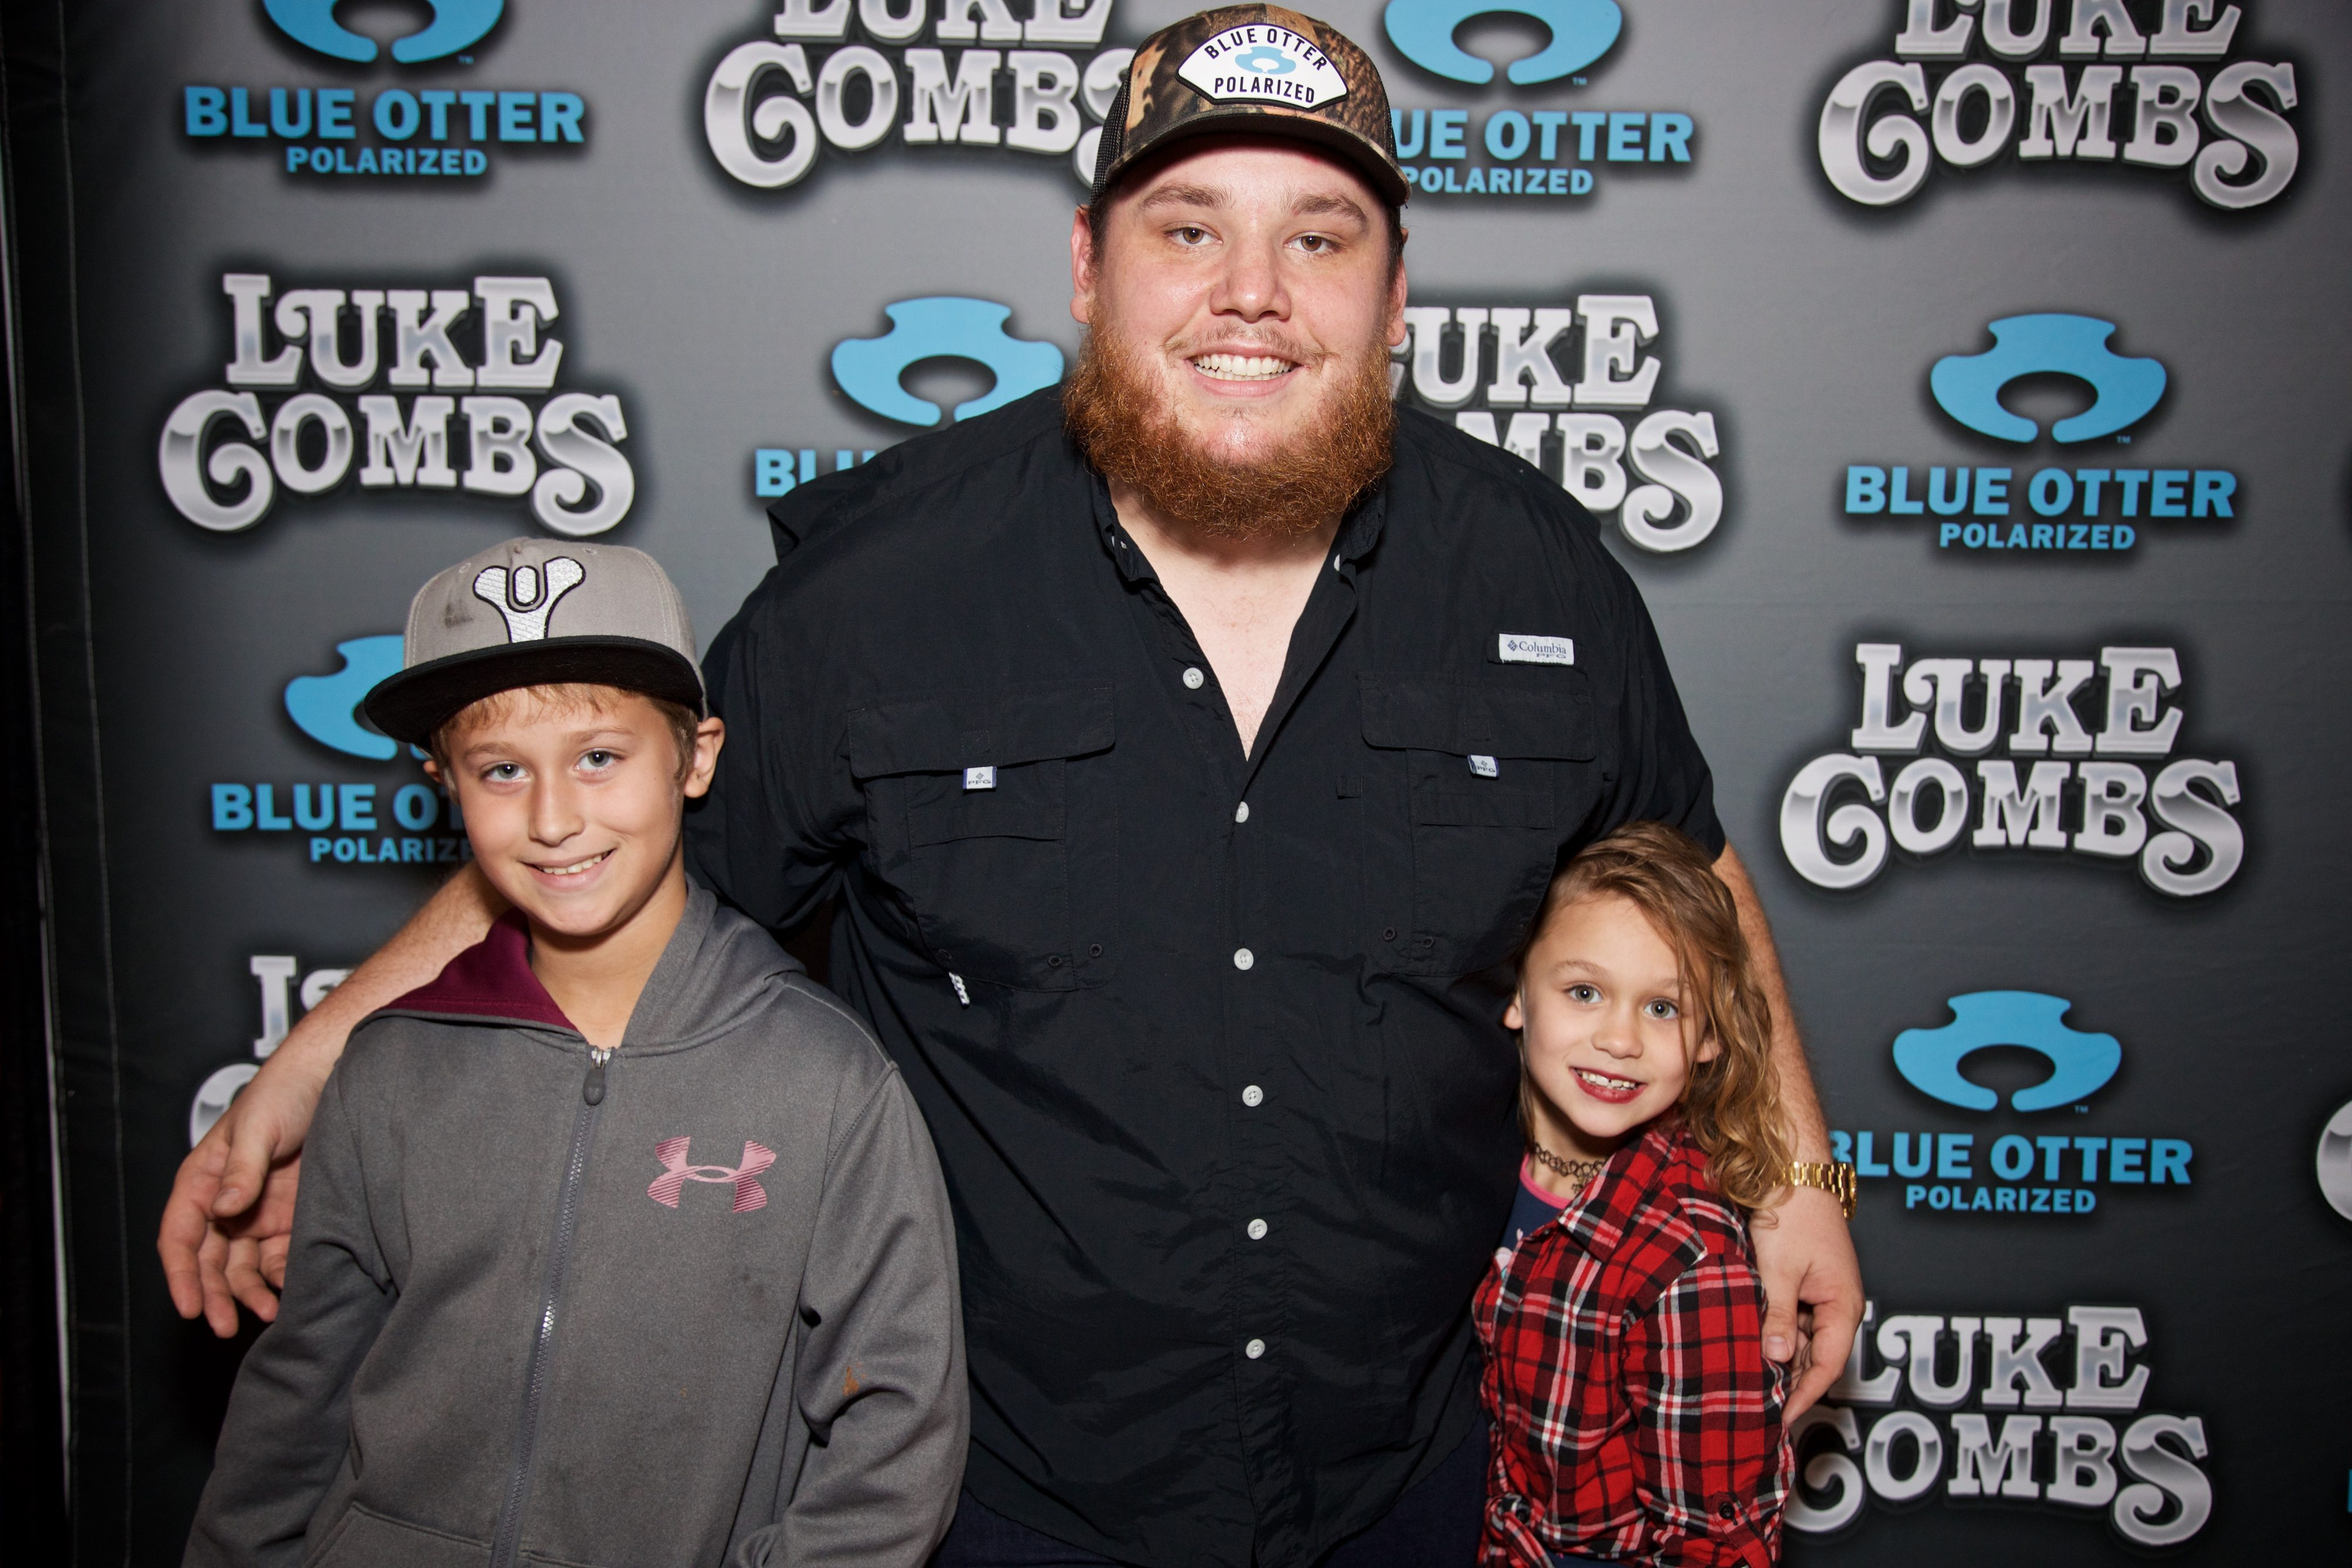 20191206_Luke_Combs_Lubbock_0030